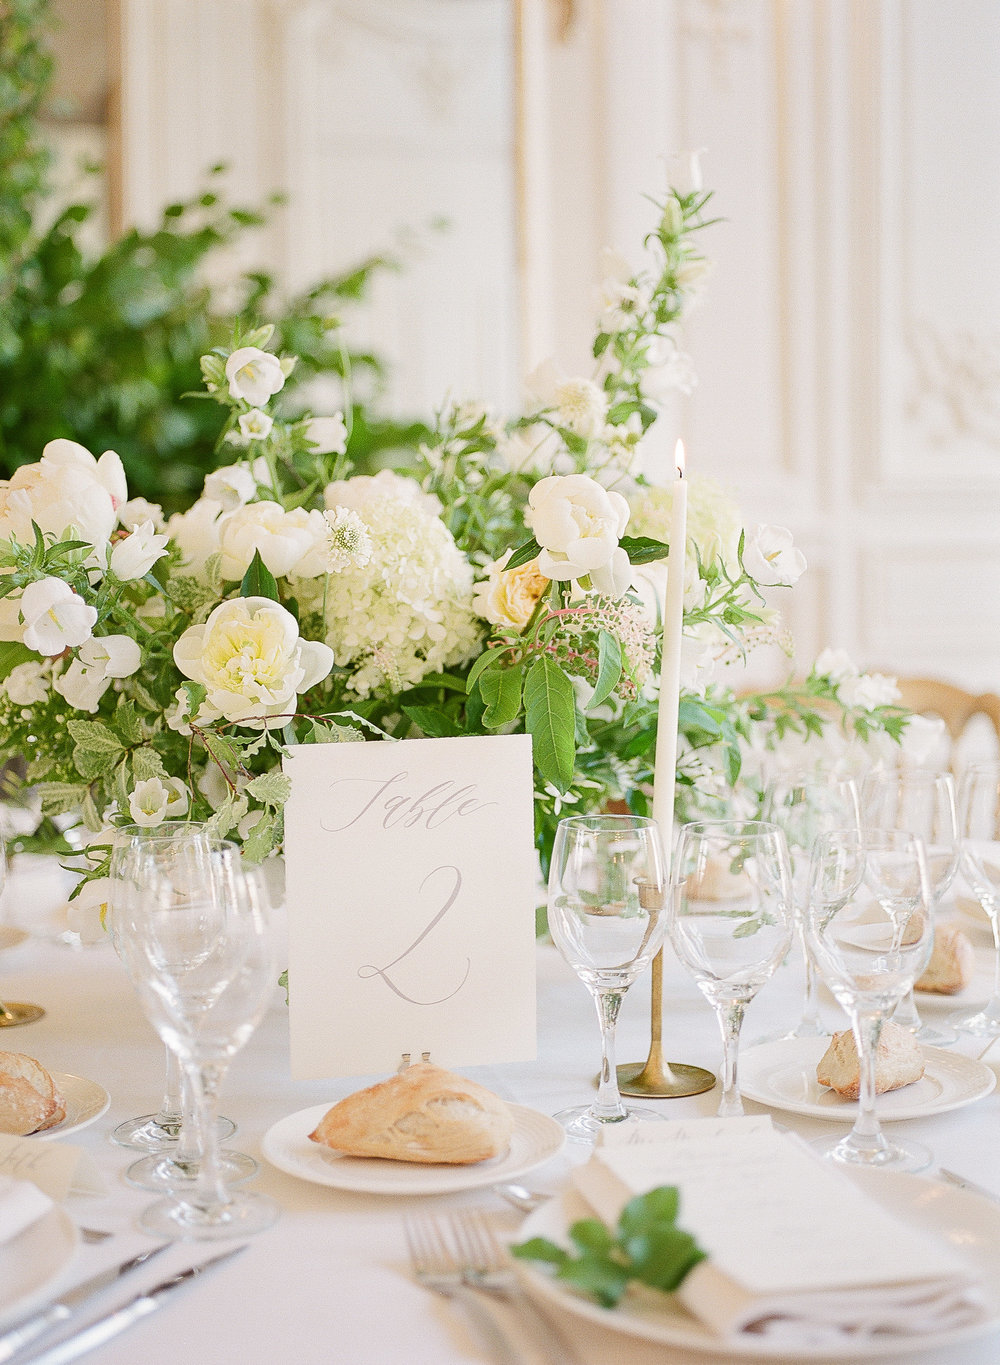 paris-wedding-florist-white-and-green-wedding-flowers-france-florist.jpg